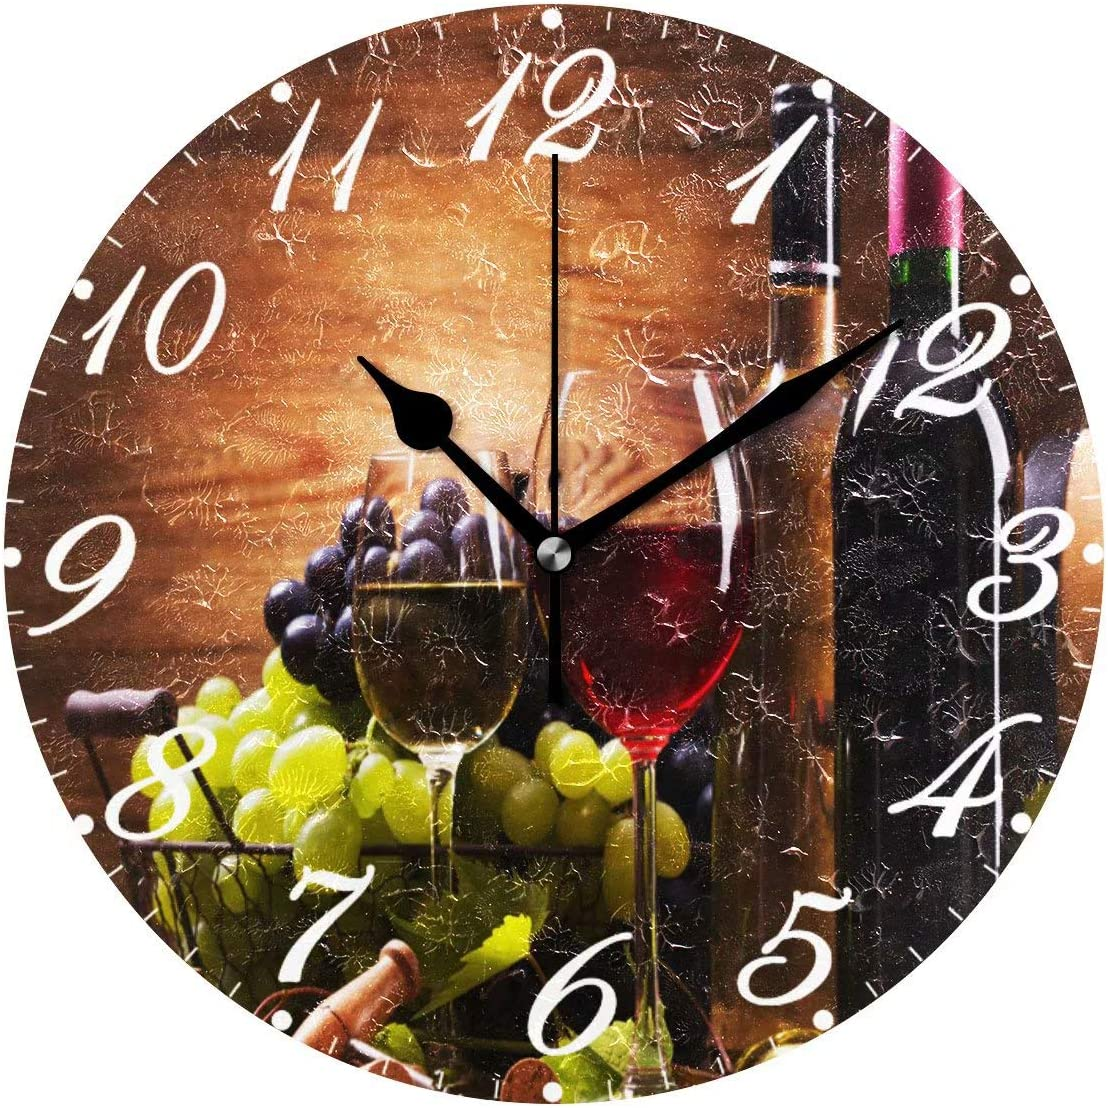 Pfrewn Wooden Wine Wall Clock Silent Non Ticking Round Grape Floral Retro Clocks Battery Operated Watercolor Vintage Desk Clock 10 Inch Quartz Analog Quiet Bedroom Living Room Home Decor